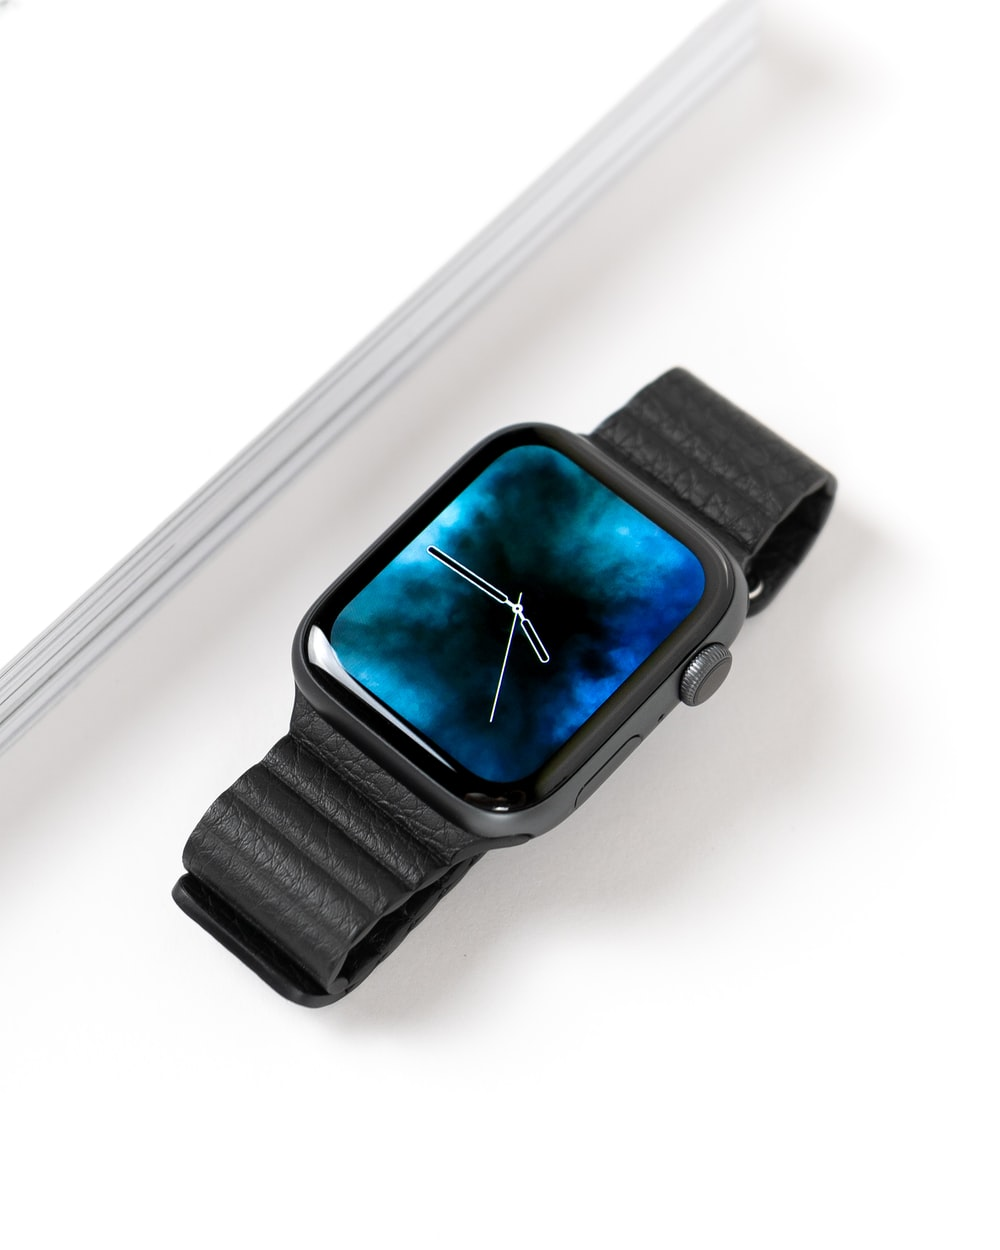 space gray Apple Watch